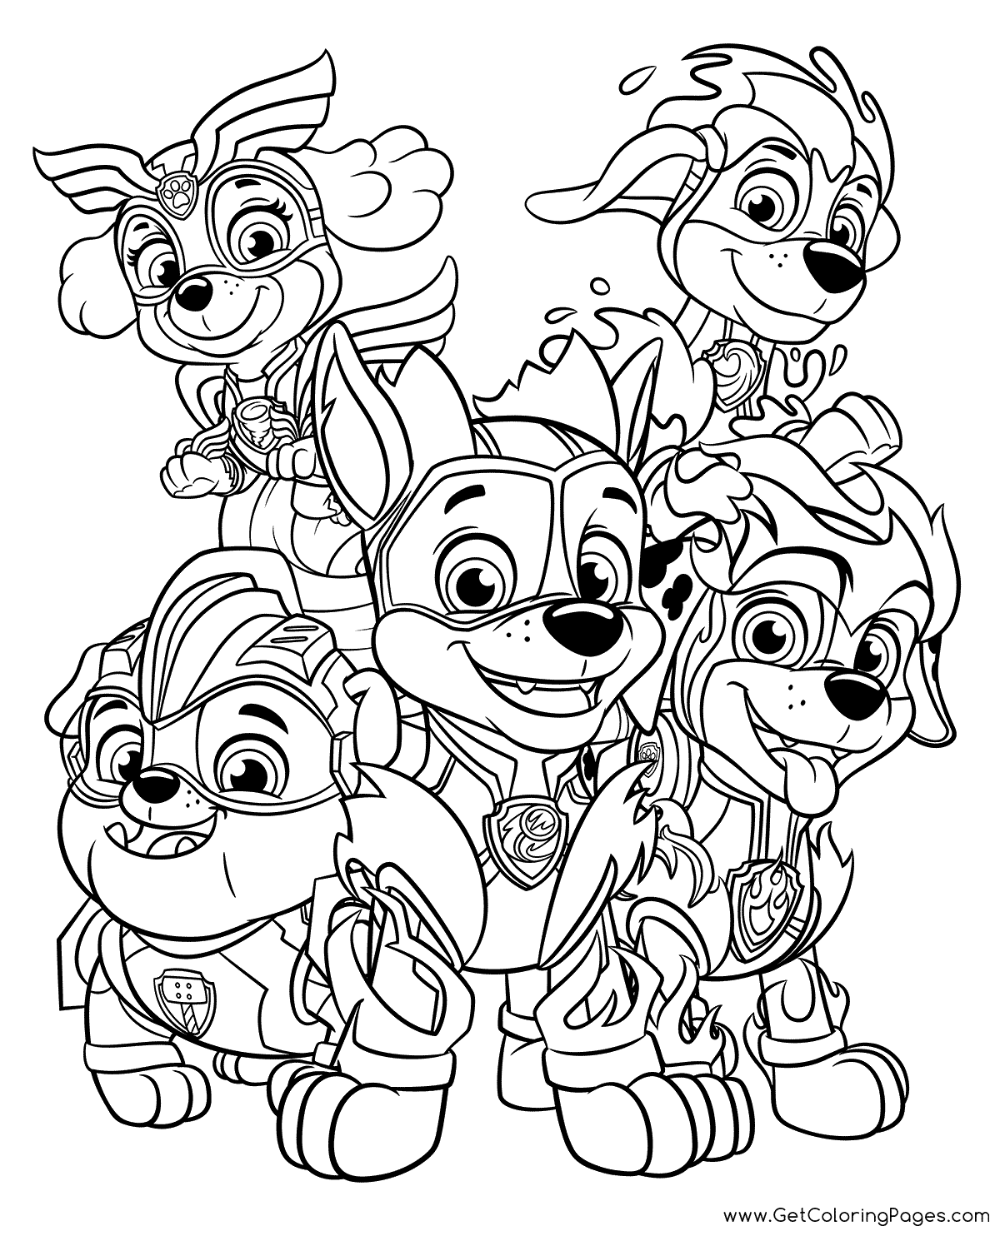 Download now this free coloring page or print and color for your